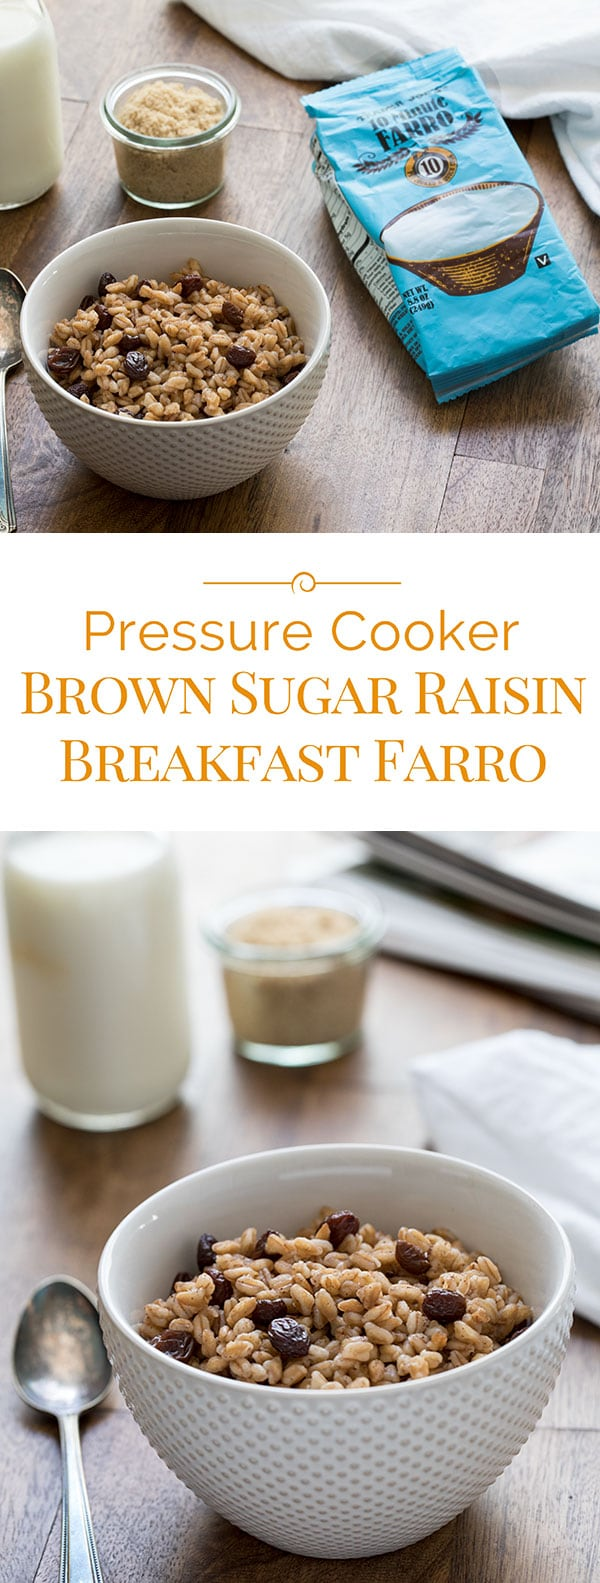 Pressure-Cooker-Brown-Sugar-Raisin-Breakfast-Farro-Collage-Pressure-Cooking-Today